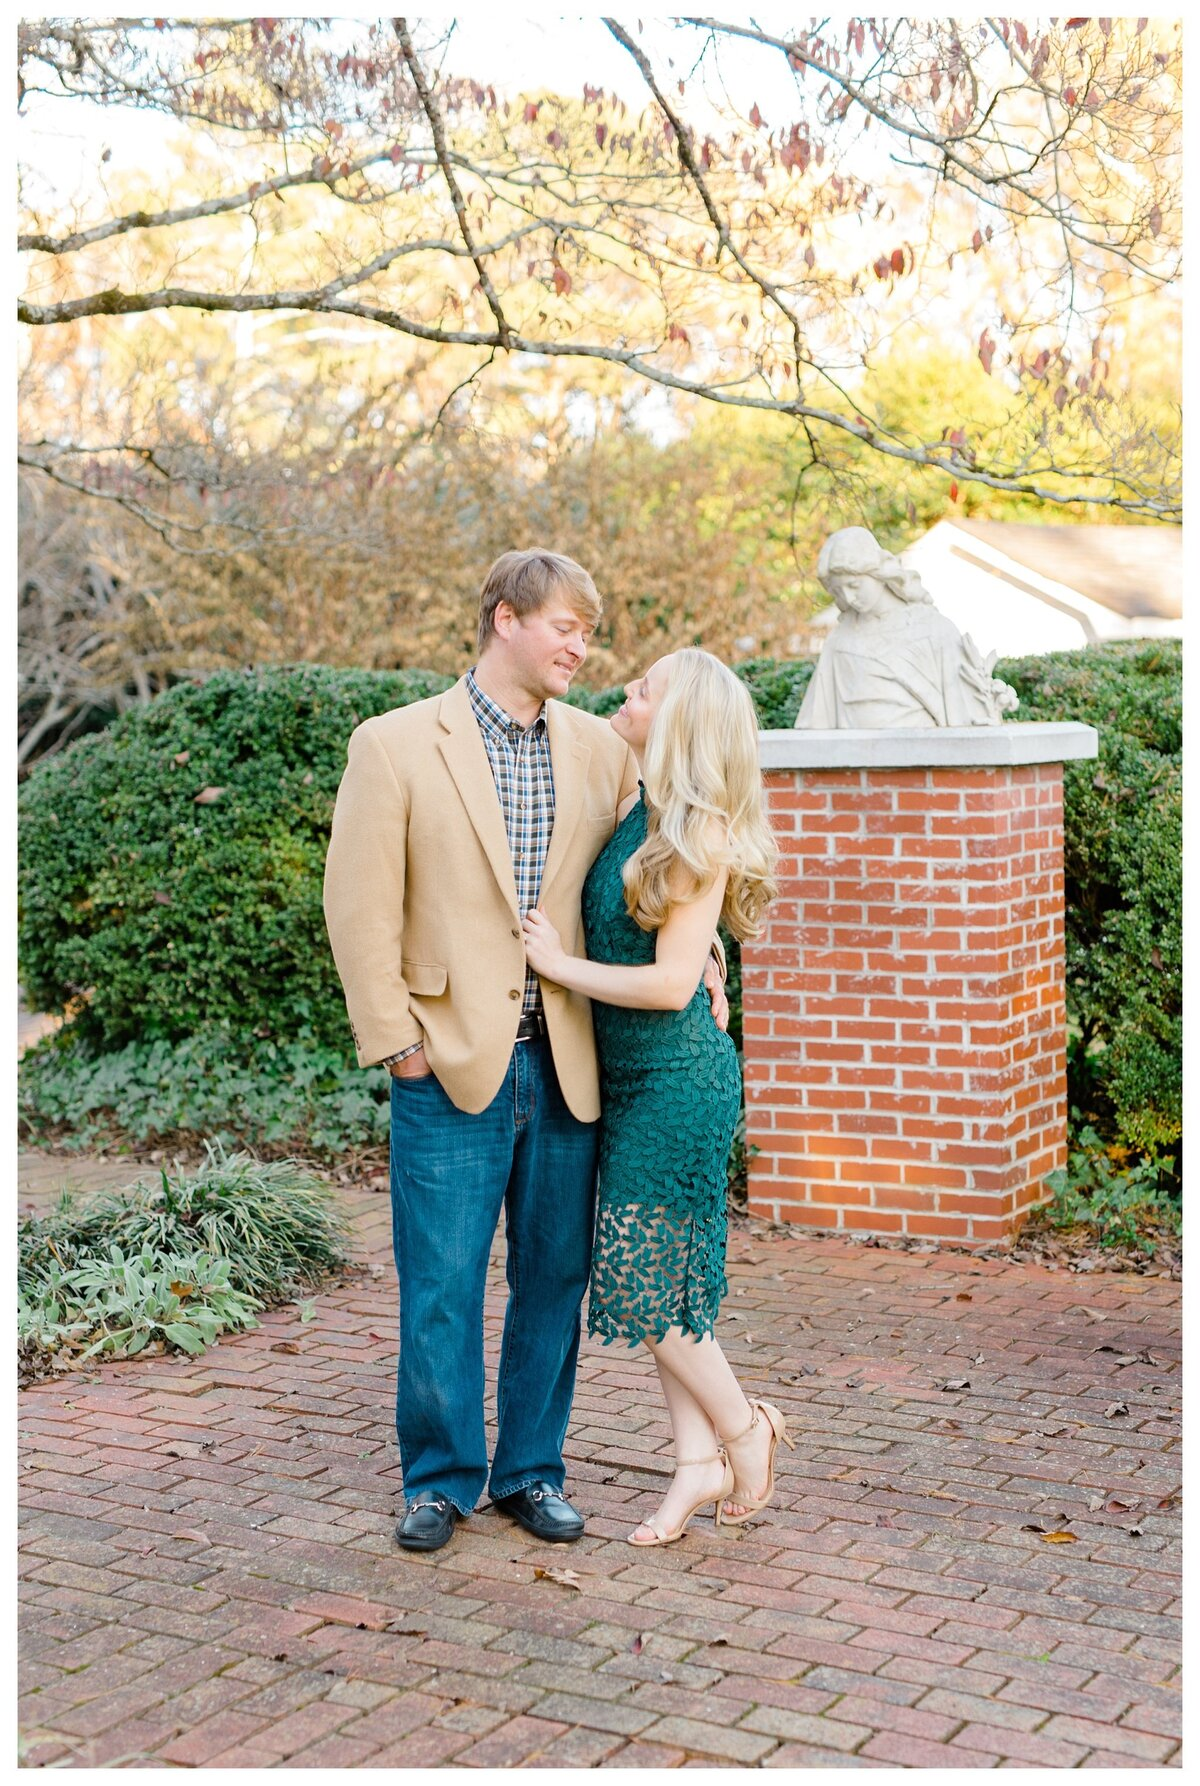 canady-engagements-atlanta-wedding-photographer-22